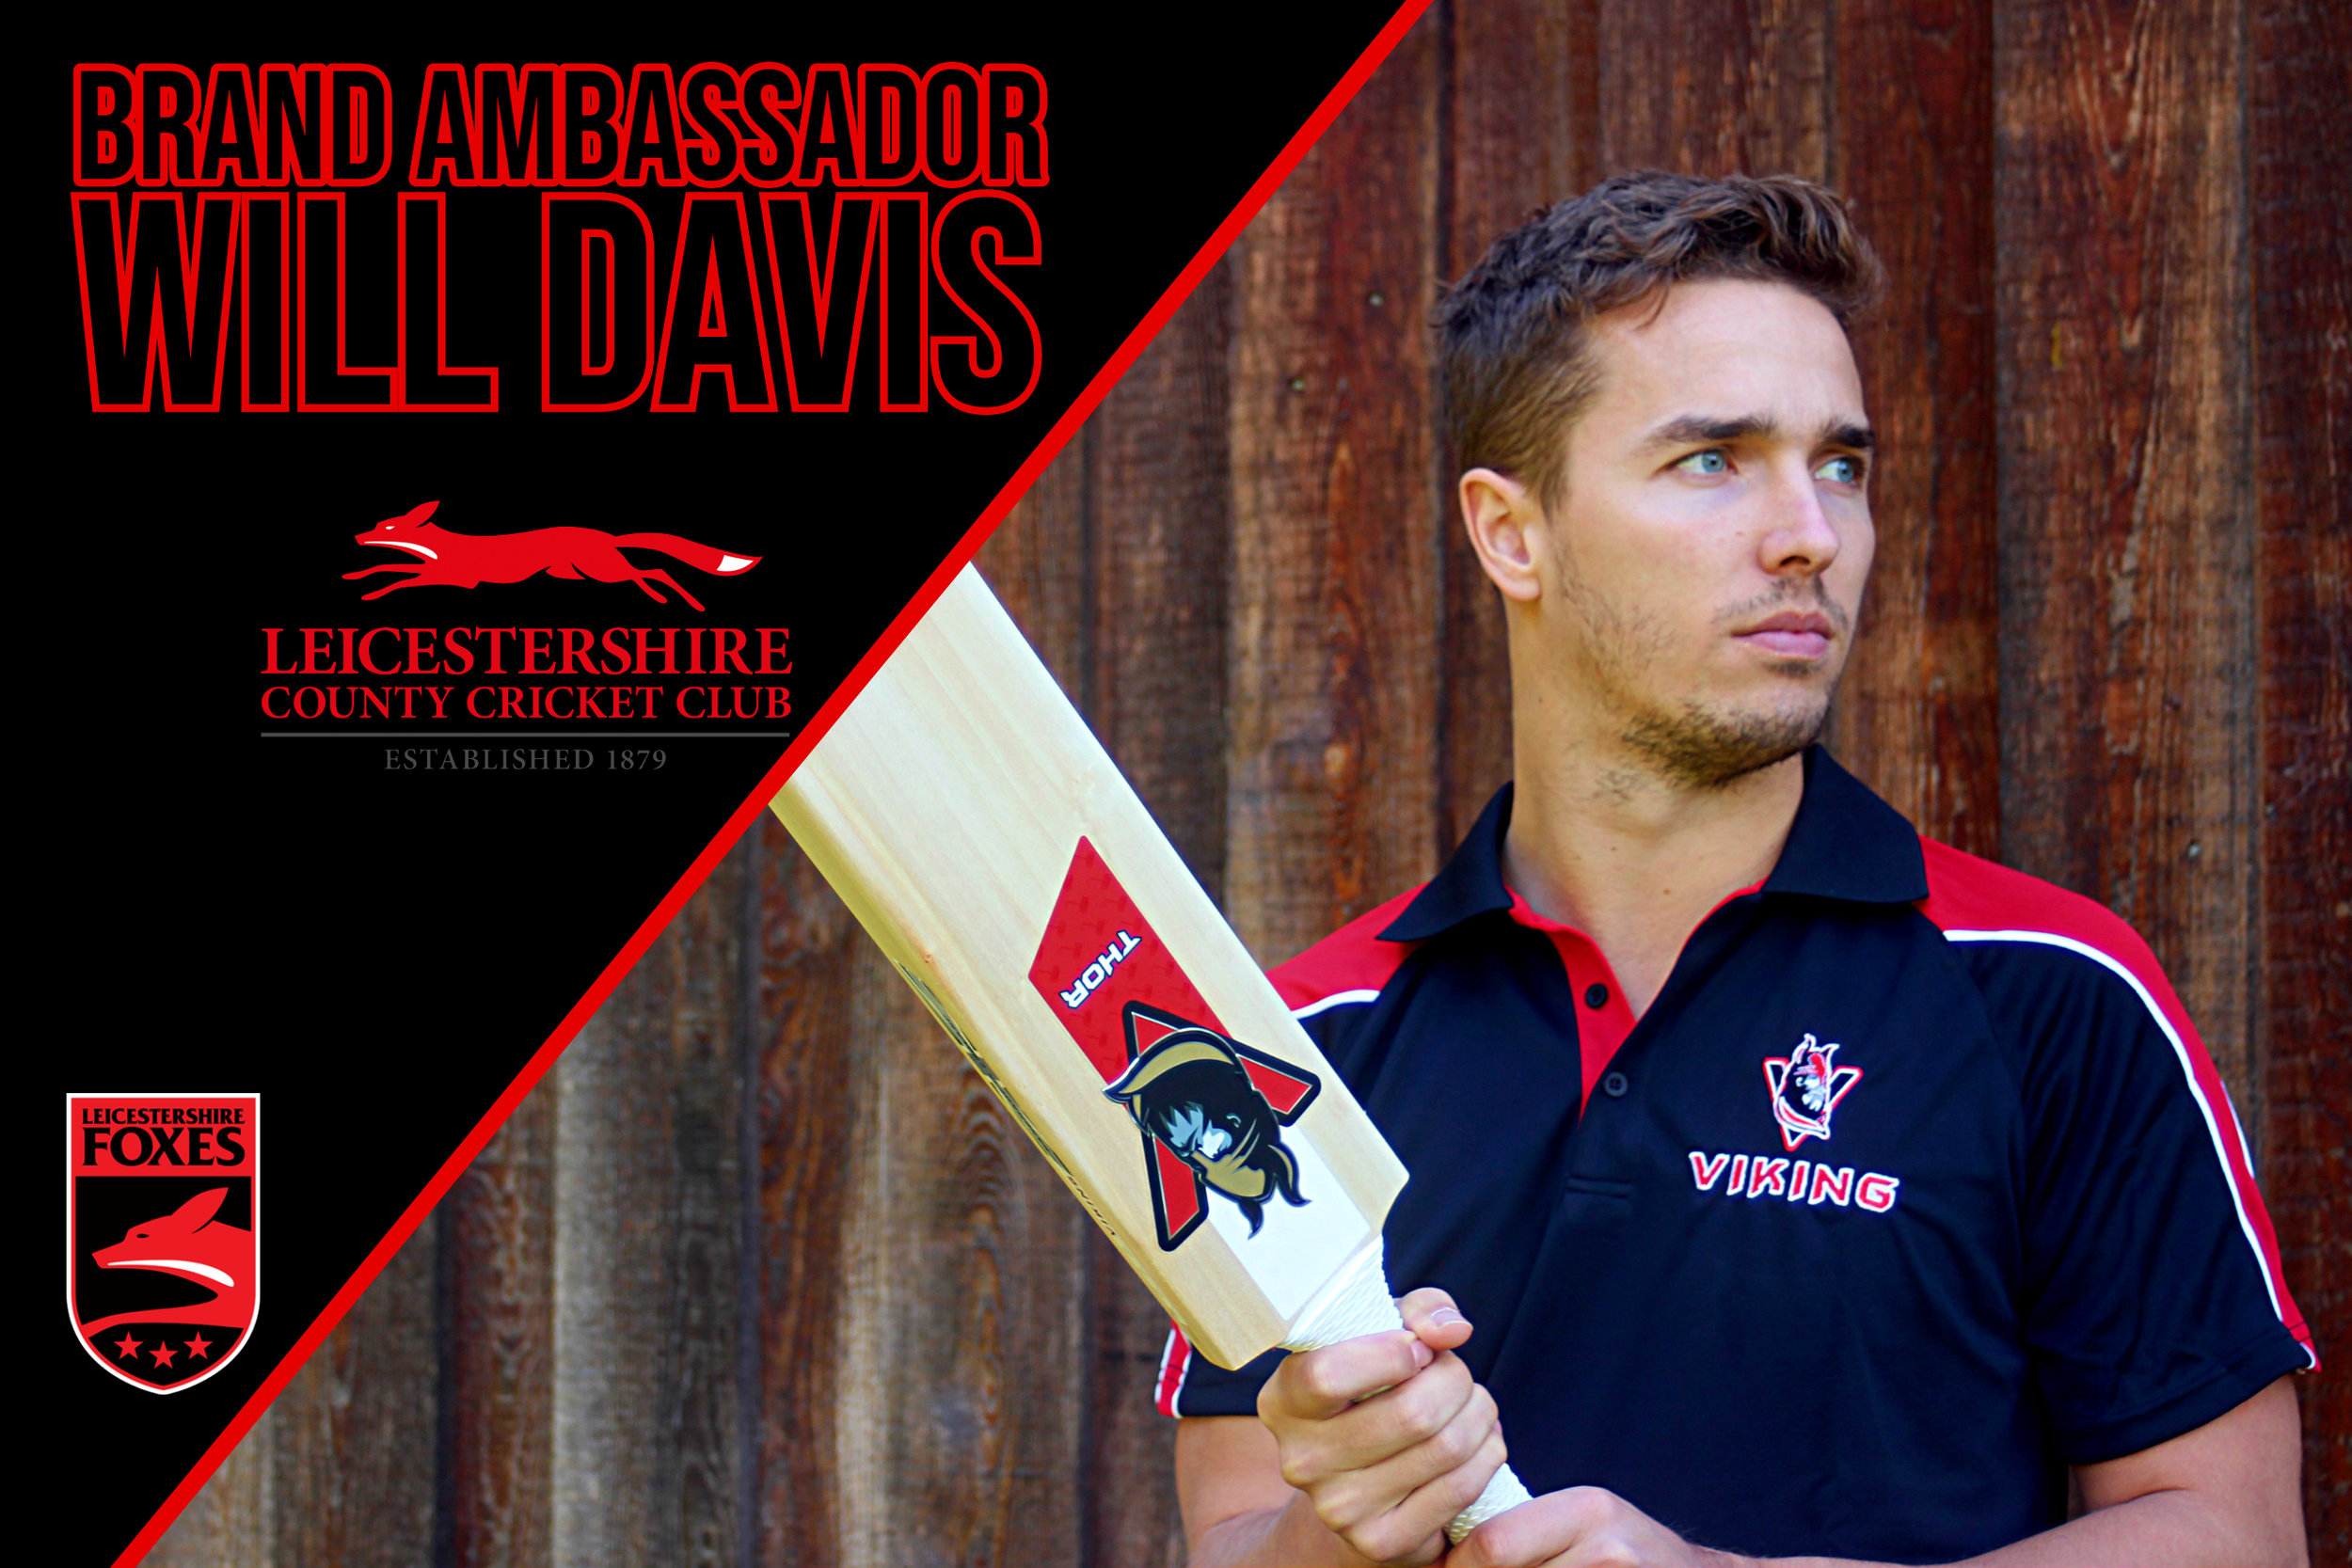 Will Davis - An English first-class cricketer, A right arm medium-fast bowler and right hand batsmen he plays for Leicestershire County Cricket Club.Will will be using the Hel-Fyr and Thor ranges.You can follow Will on twitter.com/w_davis44